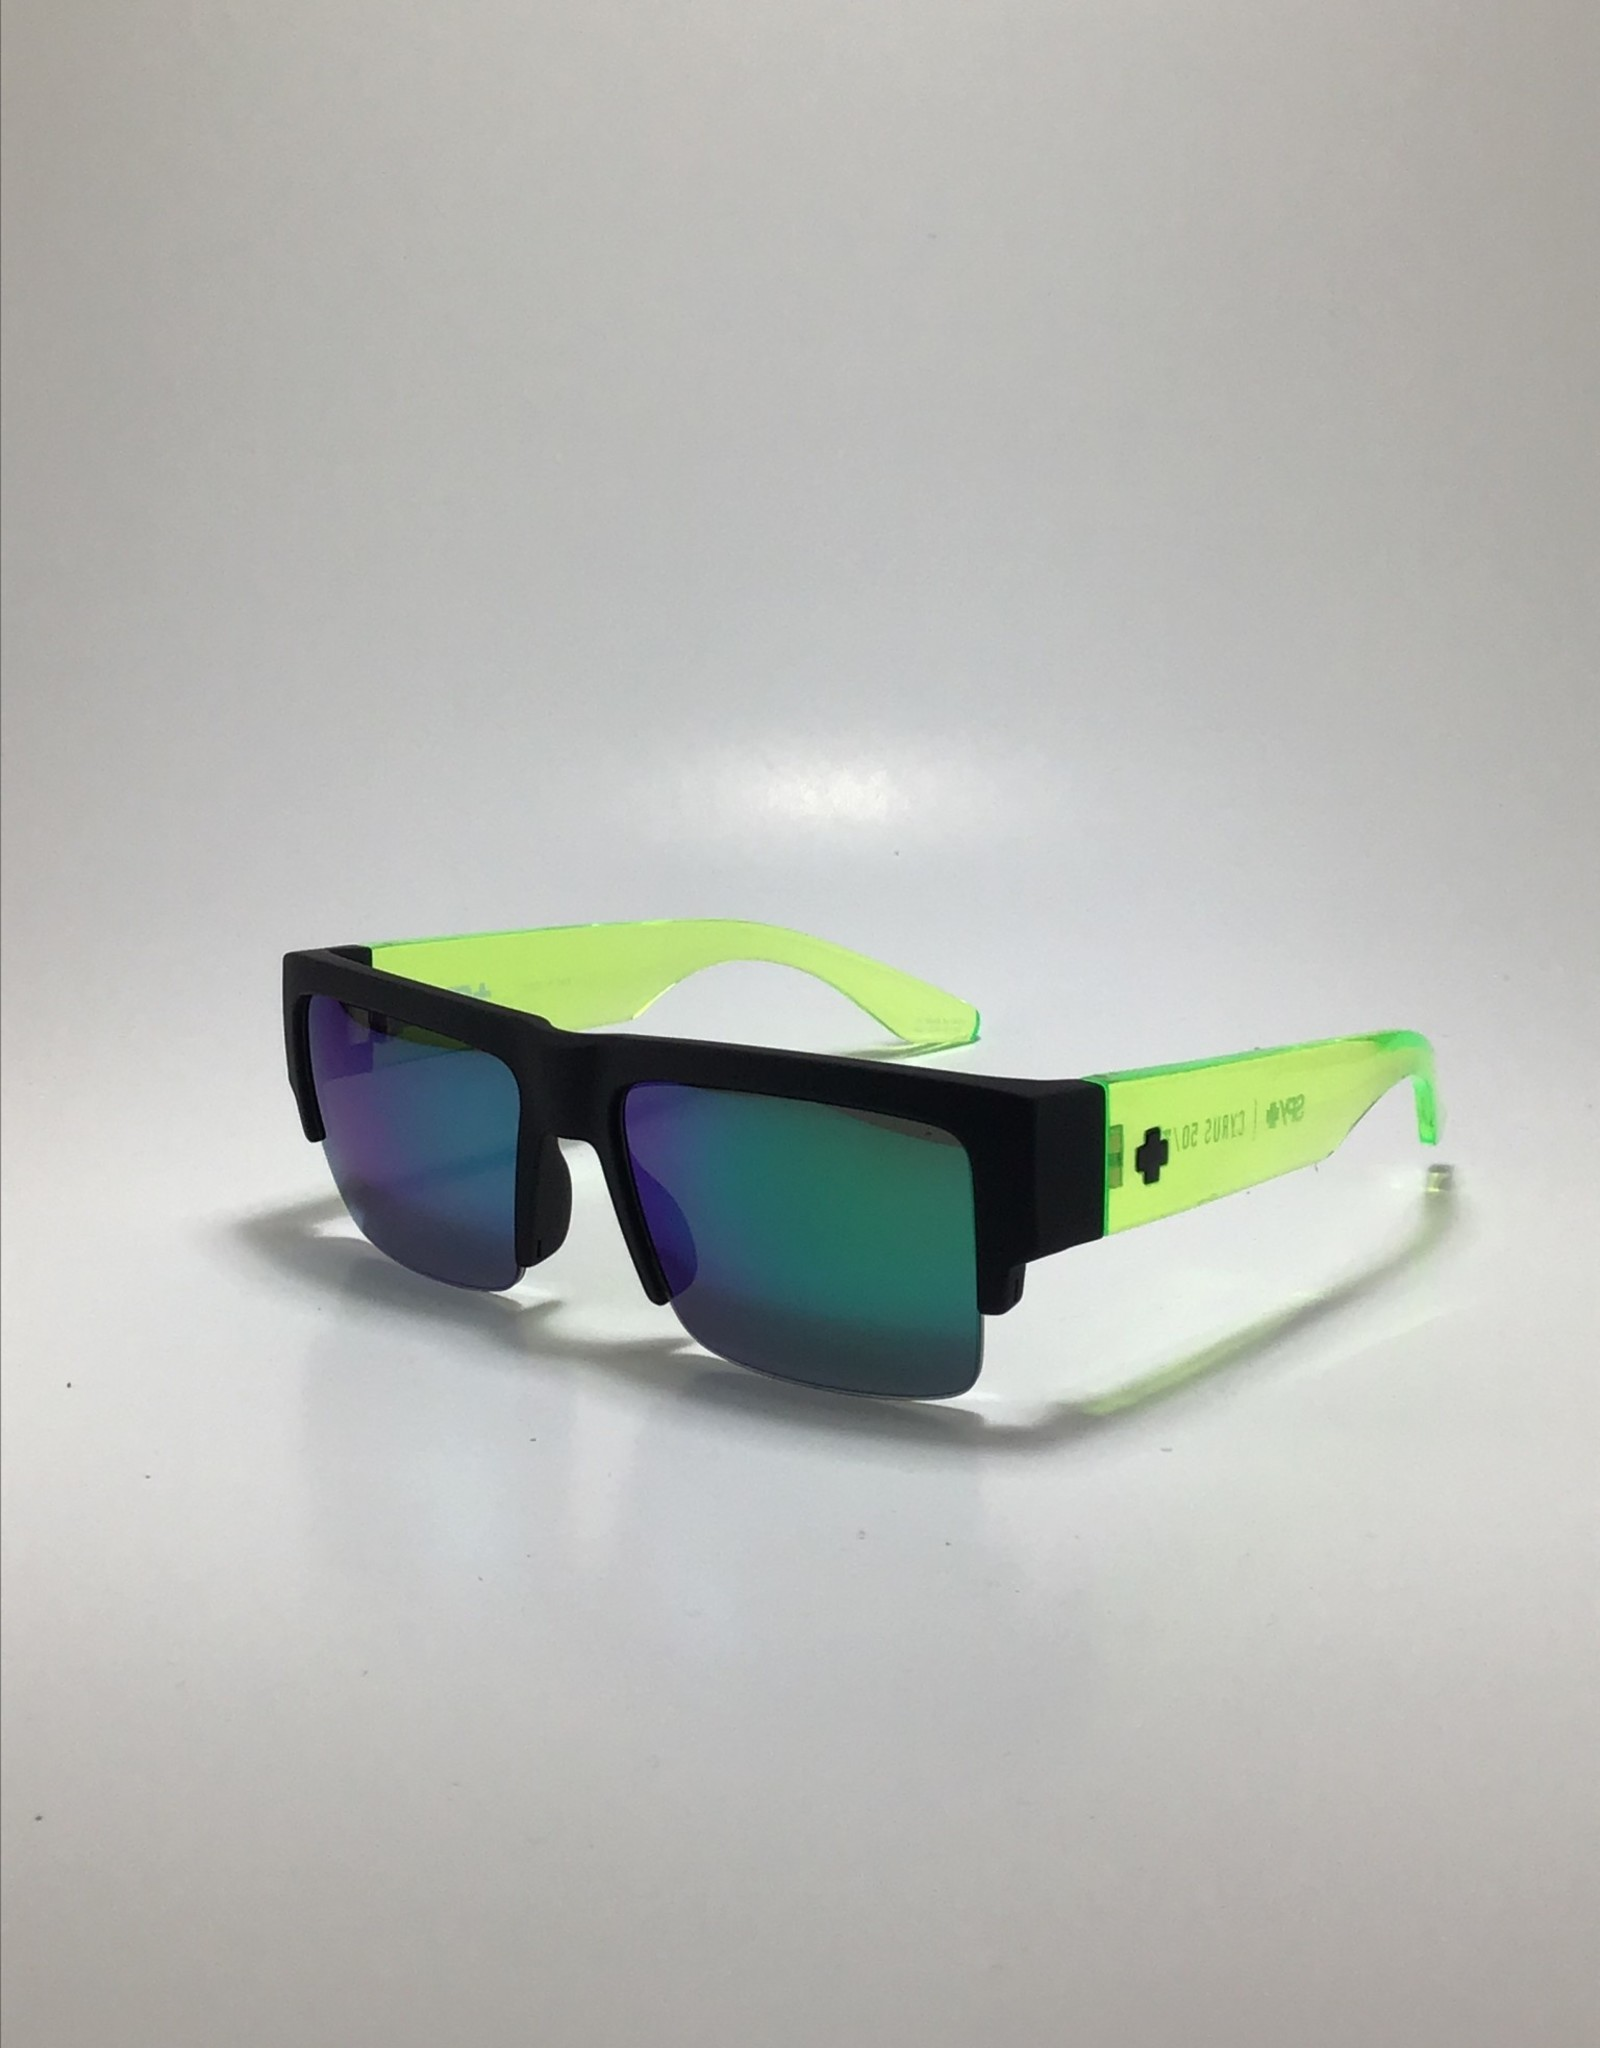 Spy Cyrus 5050 Soft Matte Black Translucent Green - HD Plus Gray Green with Green Spectra Mirror